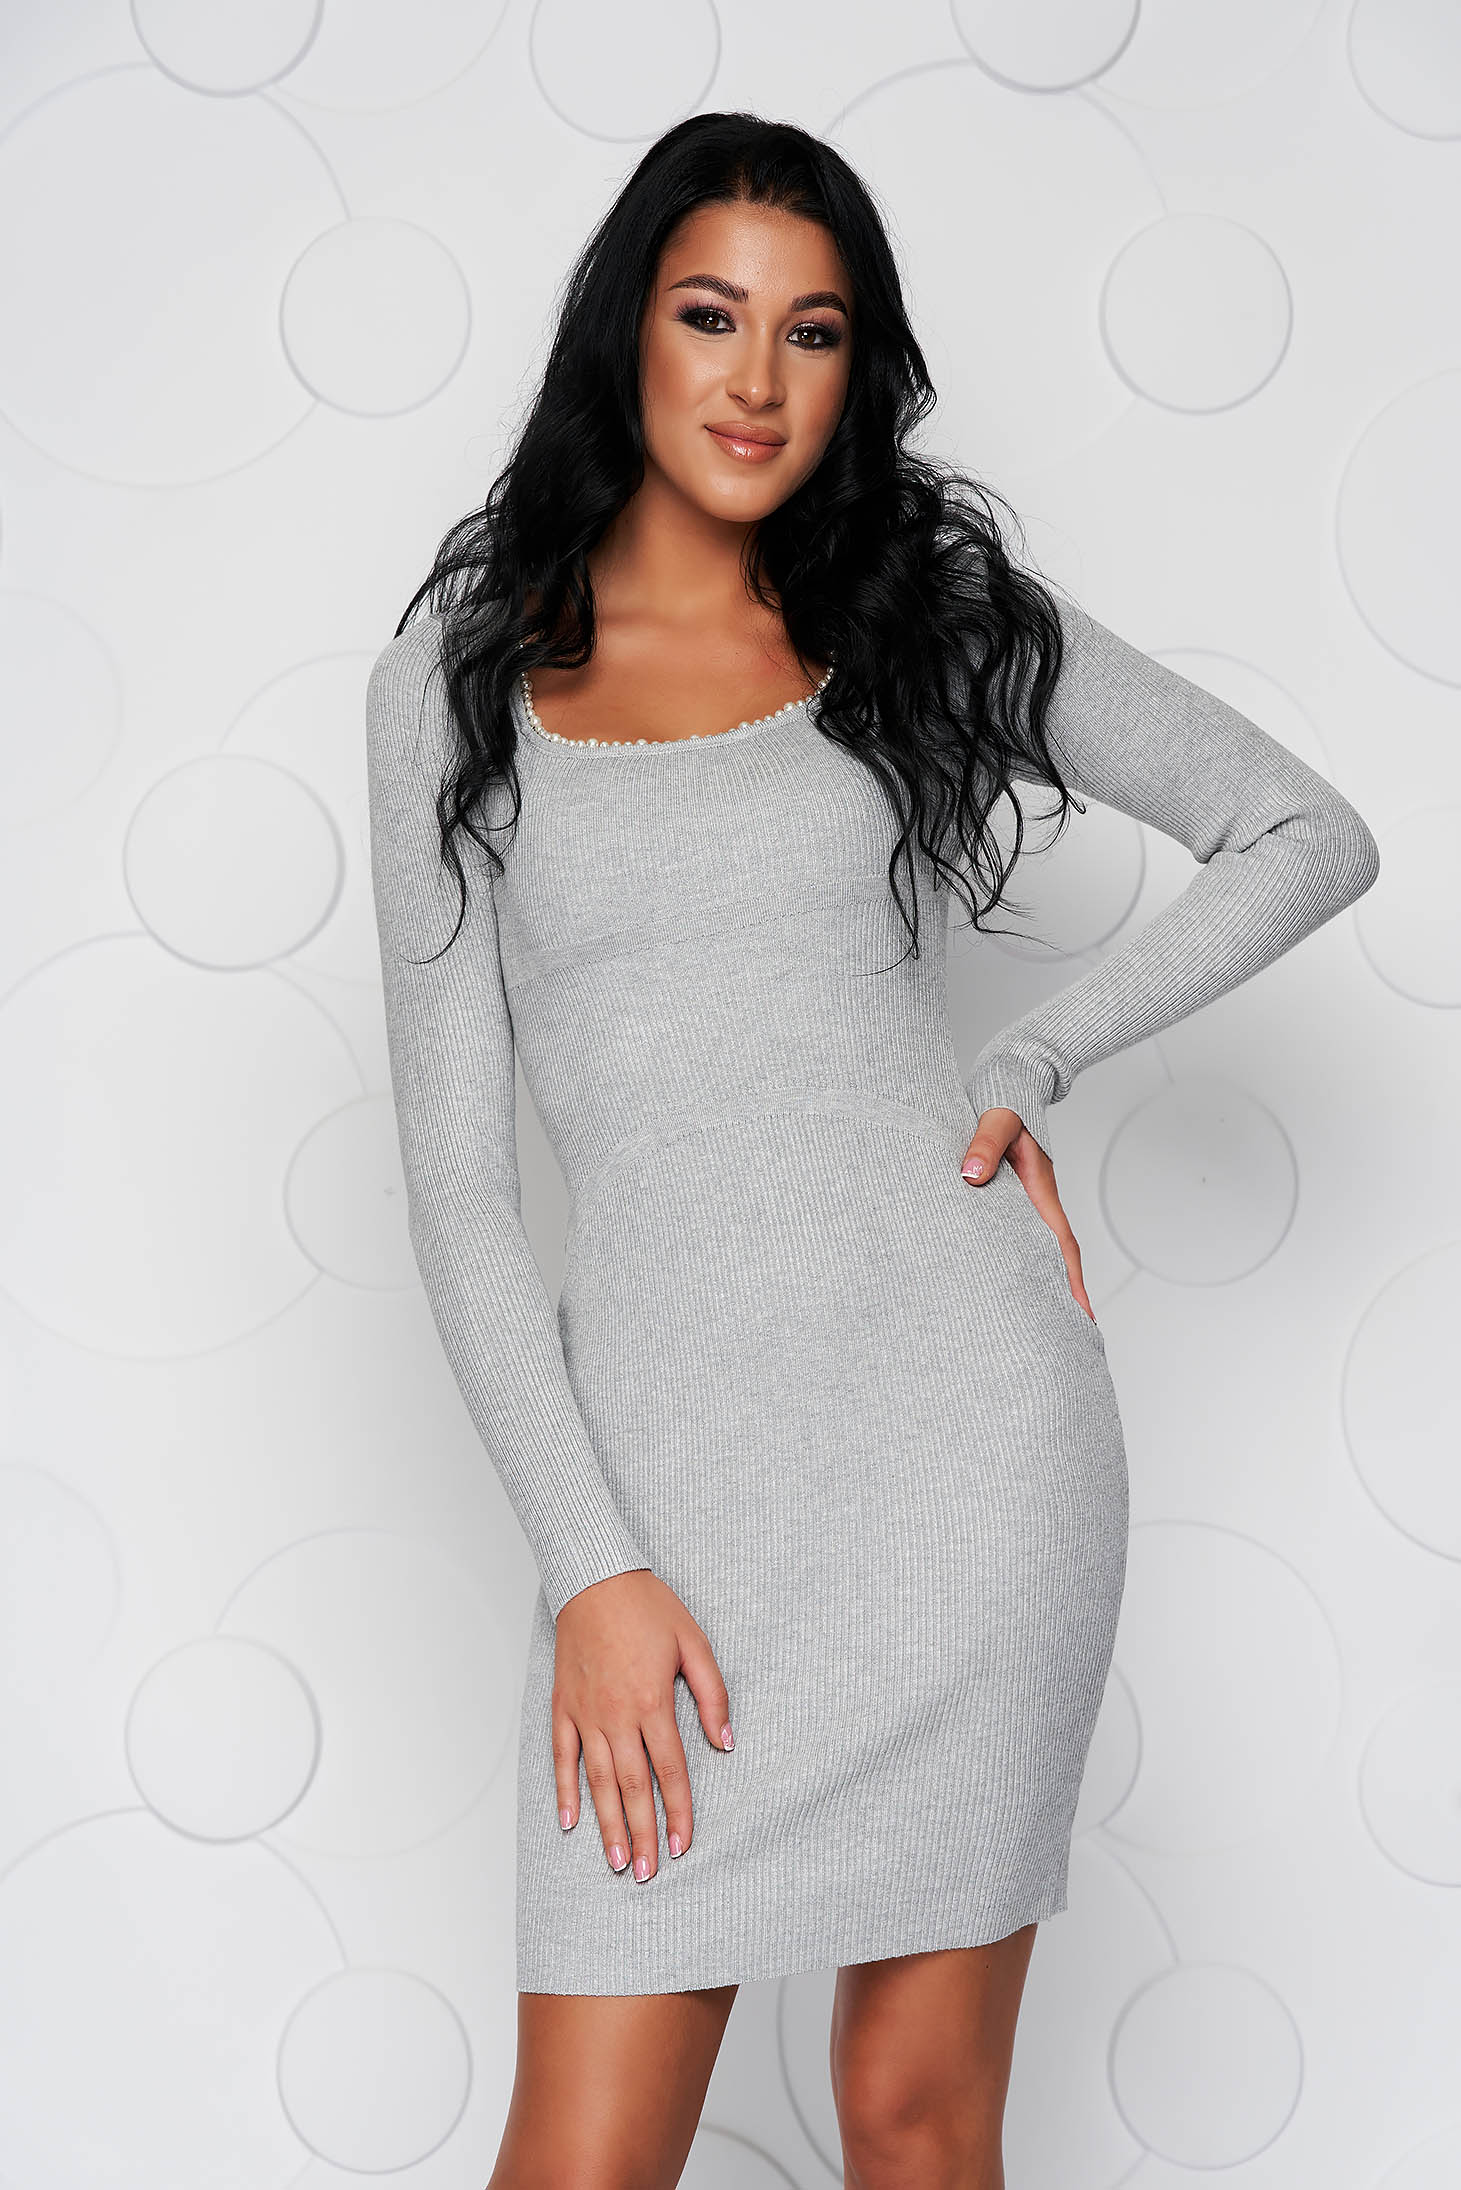 Grey dress with pearls from elastic fabric knitted fabric midi with tented cut